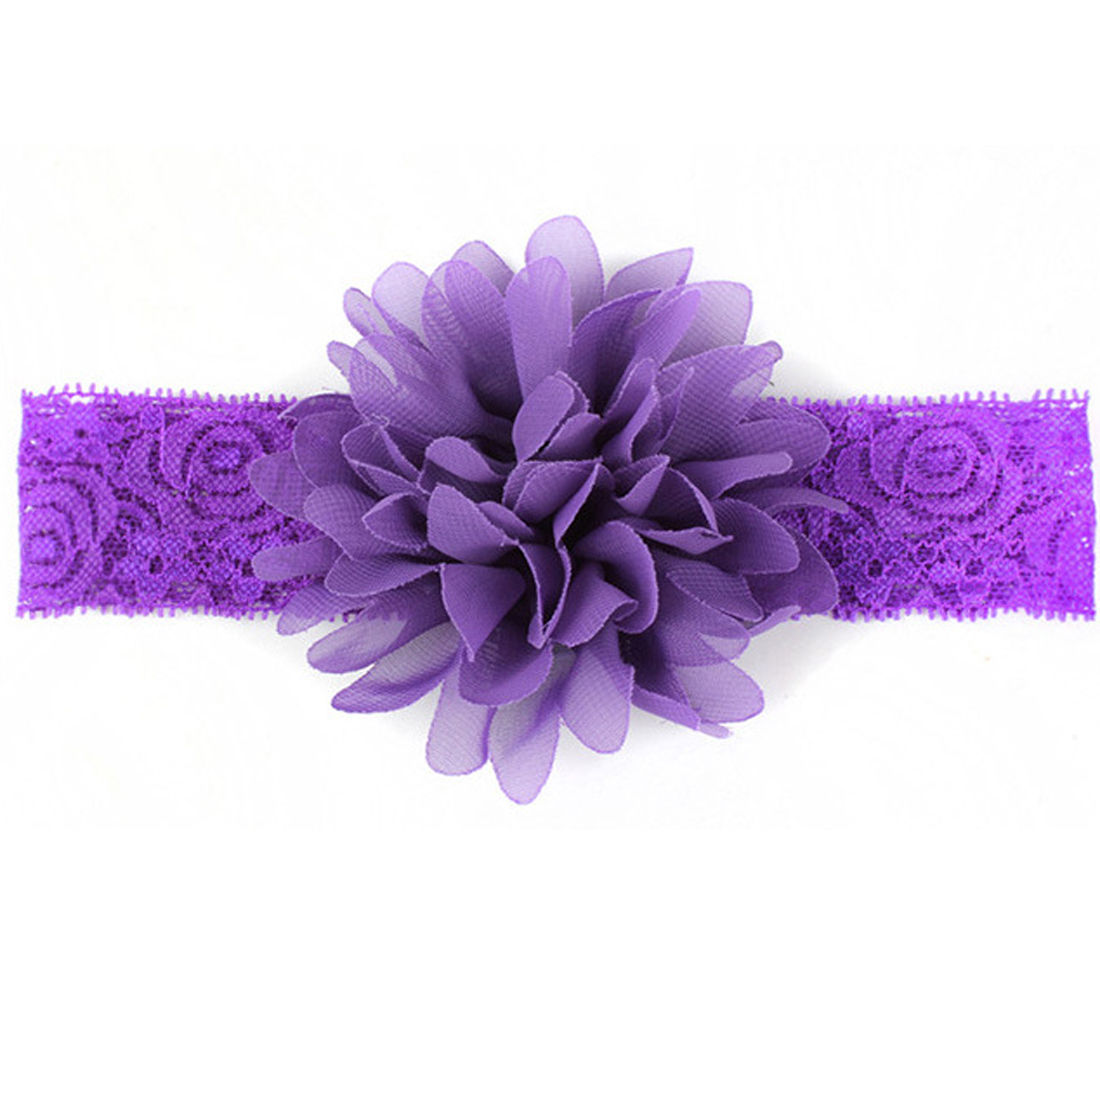 Hair Accessories for Girls Solid Lace Flower Band for Baby Hair acessorios